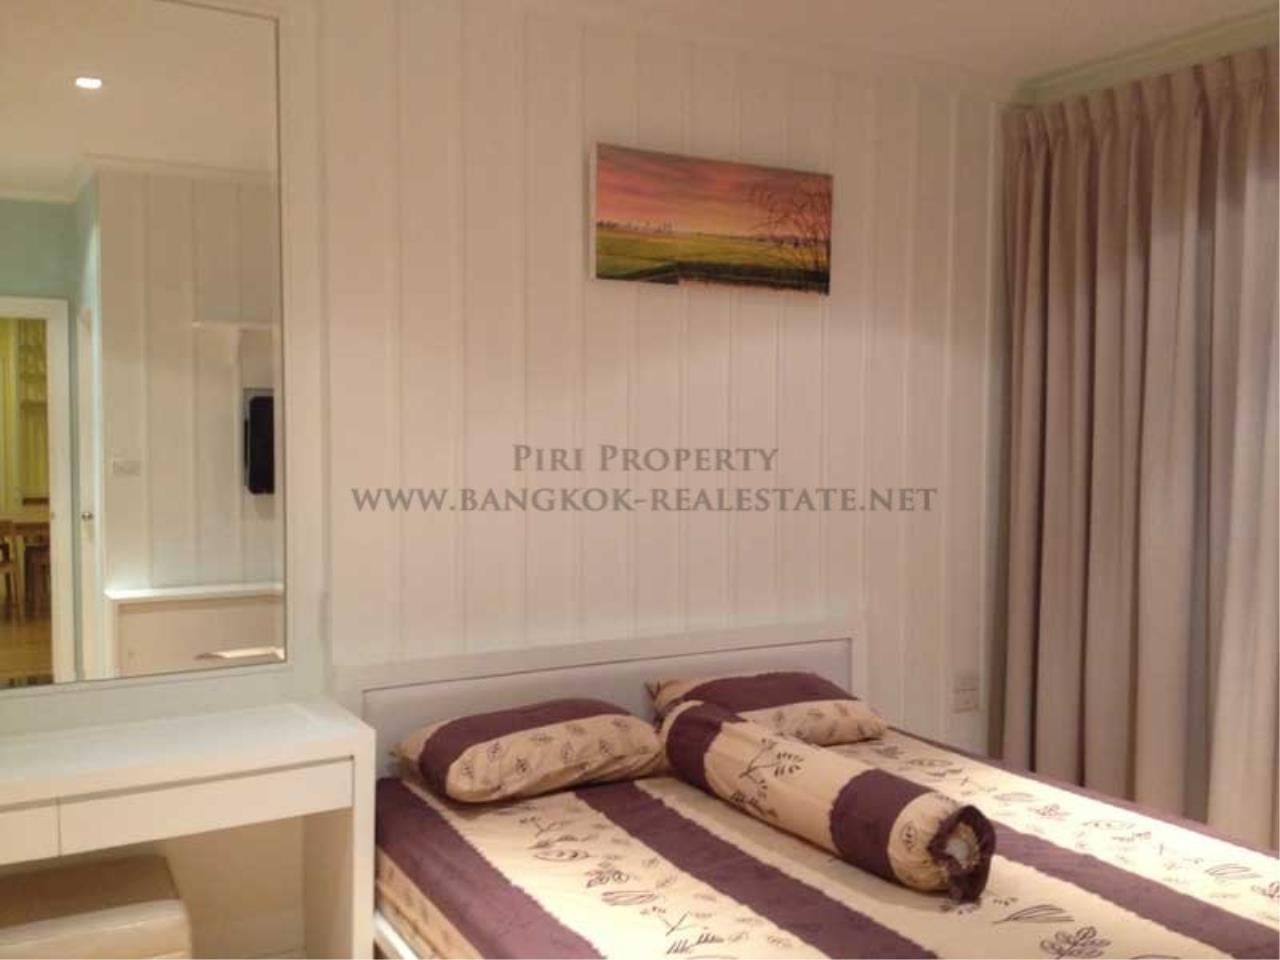 Piri Property Agency's 1 Bedroom in Villa Ratchatewi - Fully furnished on 25th Floor 5